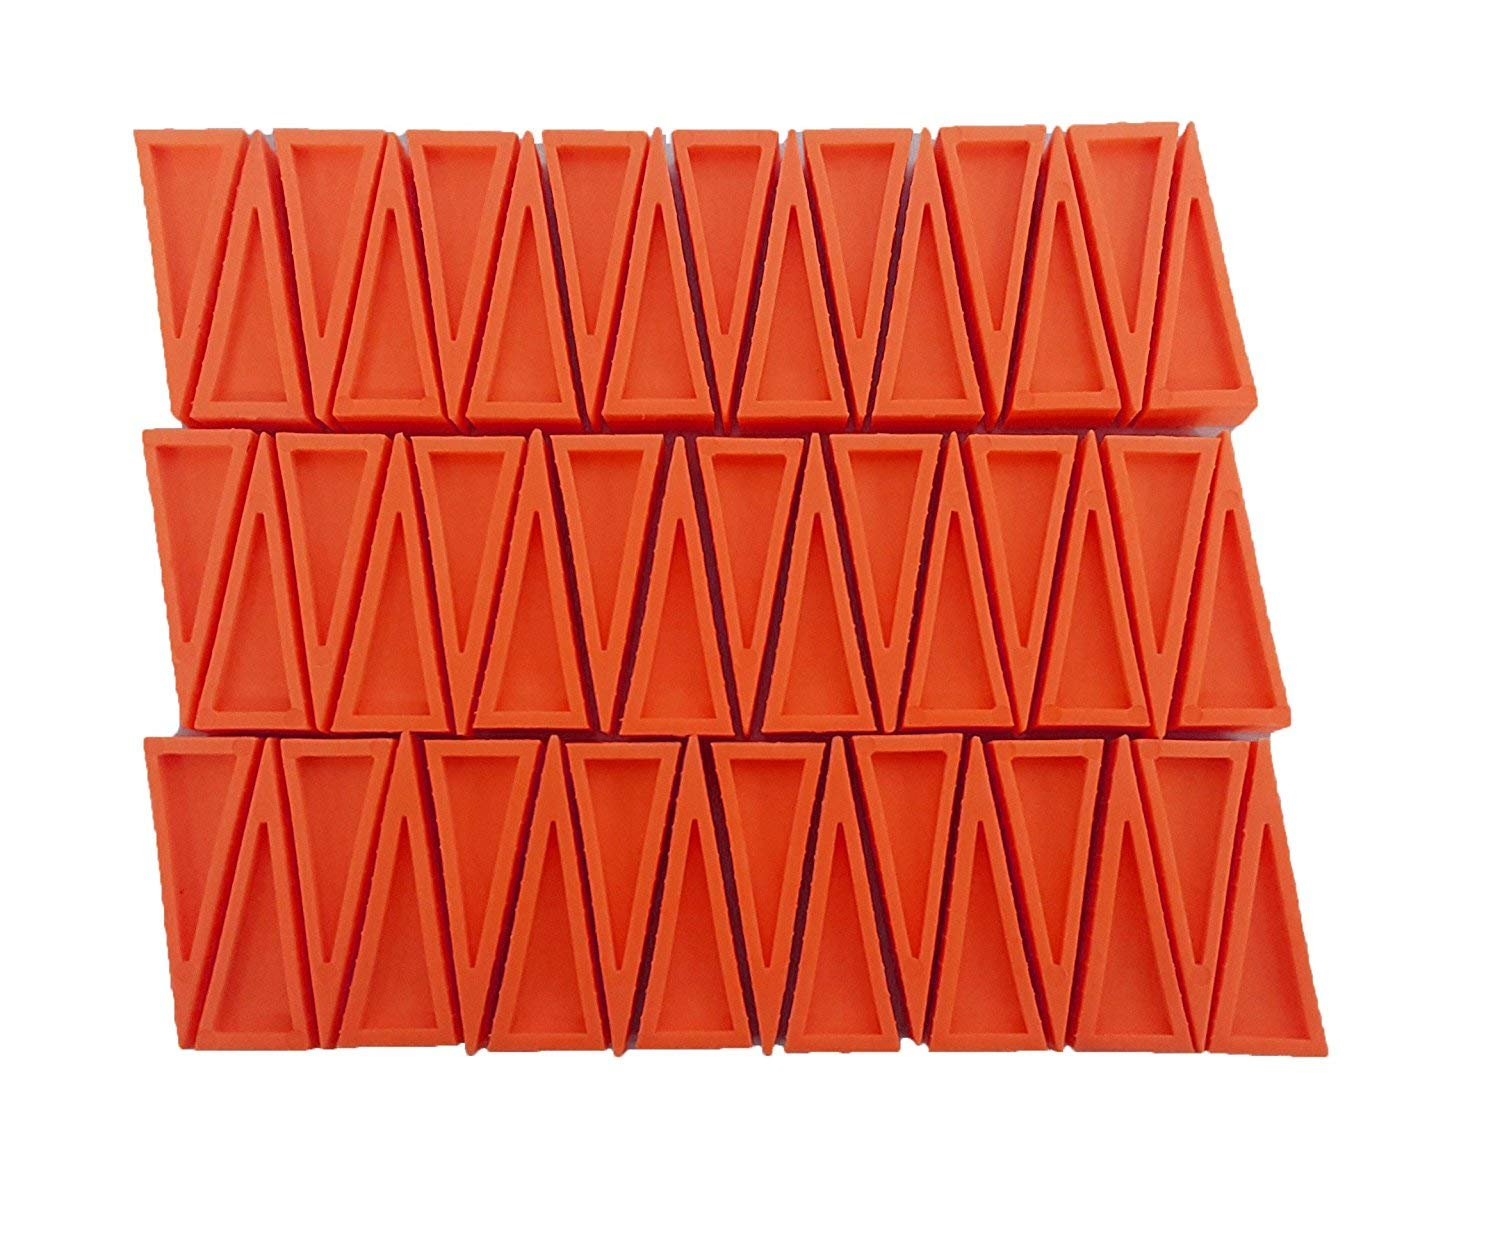 LINE2design Firefighter Door Stopper Safety Combo Wedge Pack Door Stop Loose Sprinkler Stops Safety Wedges Doors Opener (Pack of 50, Orange)